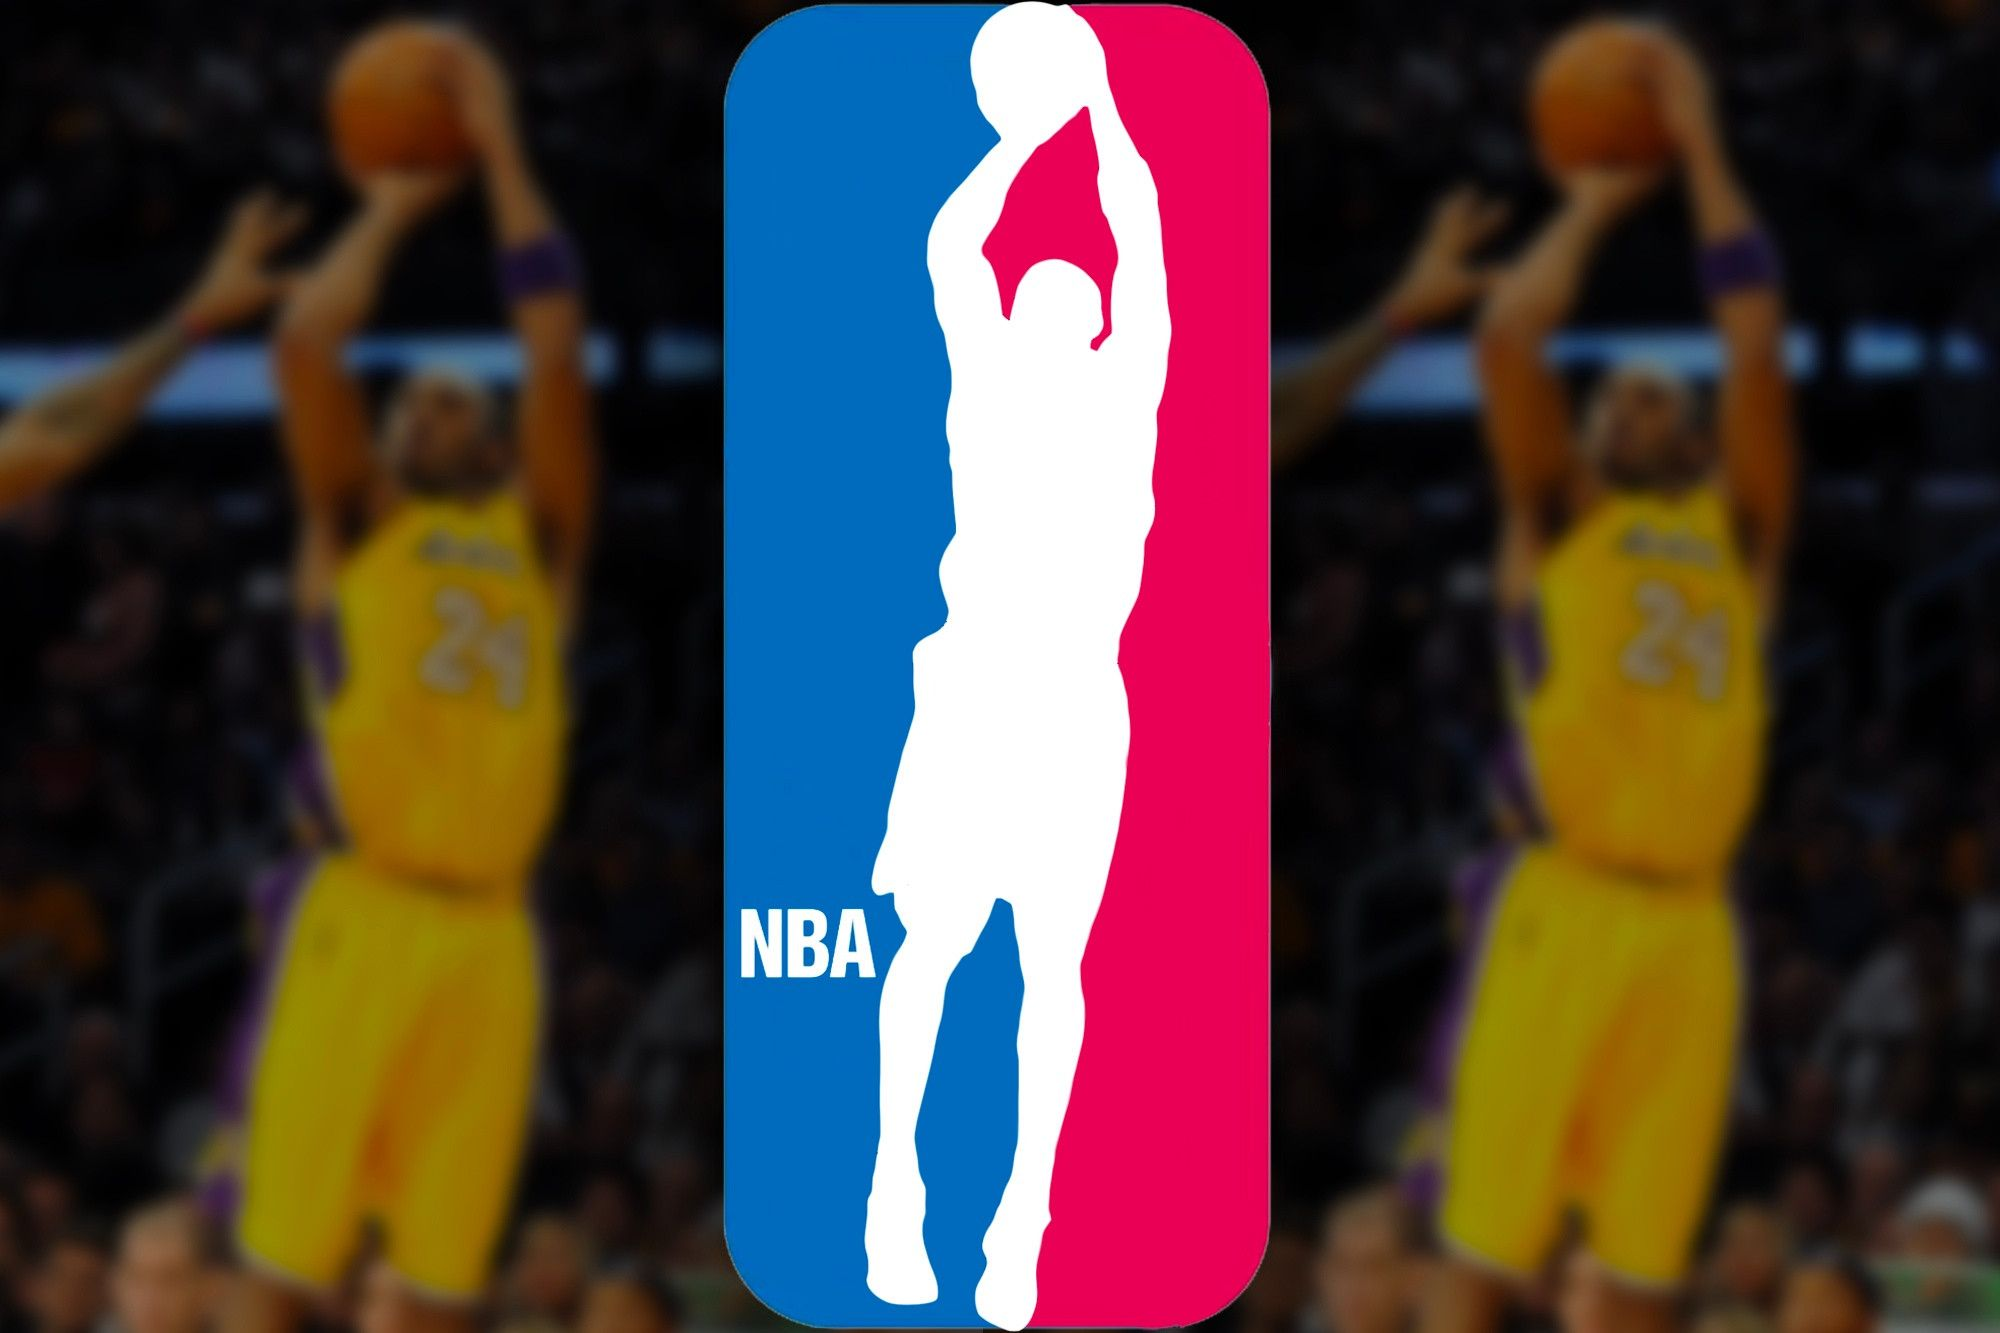 Petition to change NBA logo to Kobe Bryant has over 2